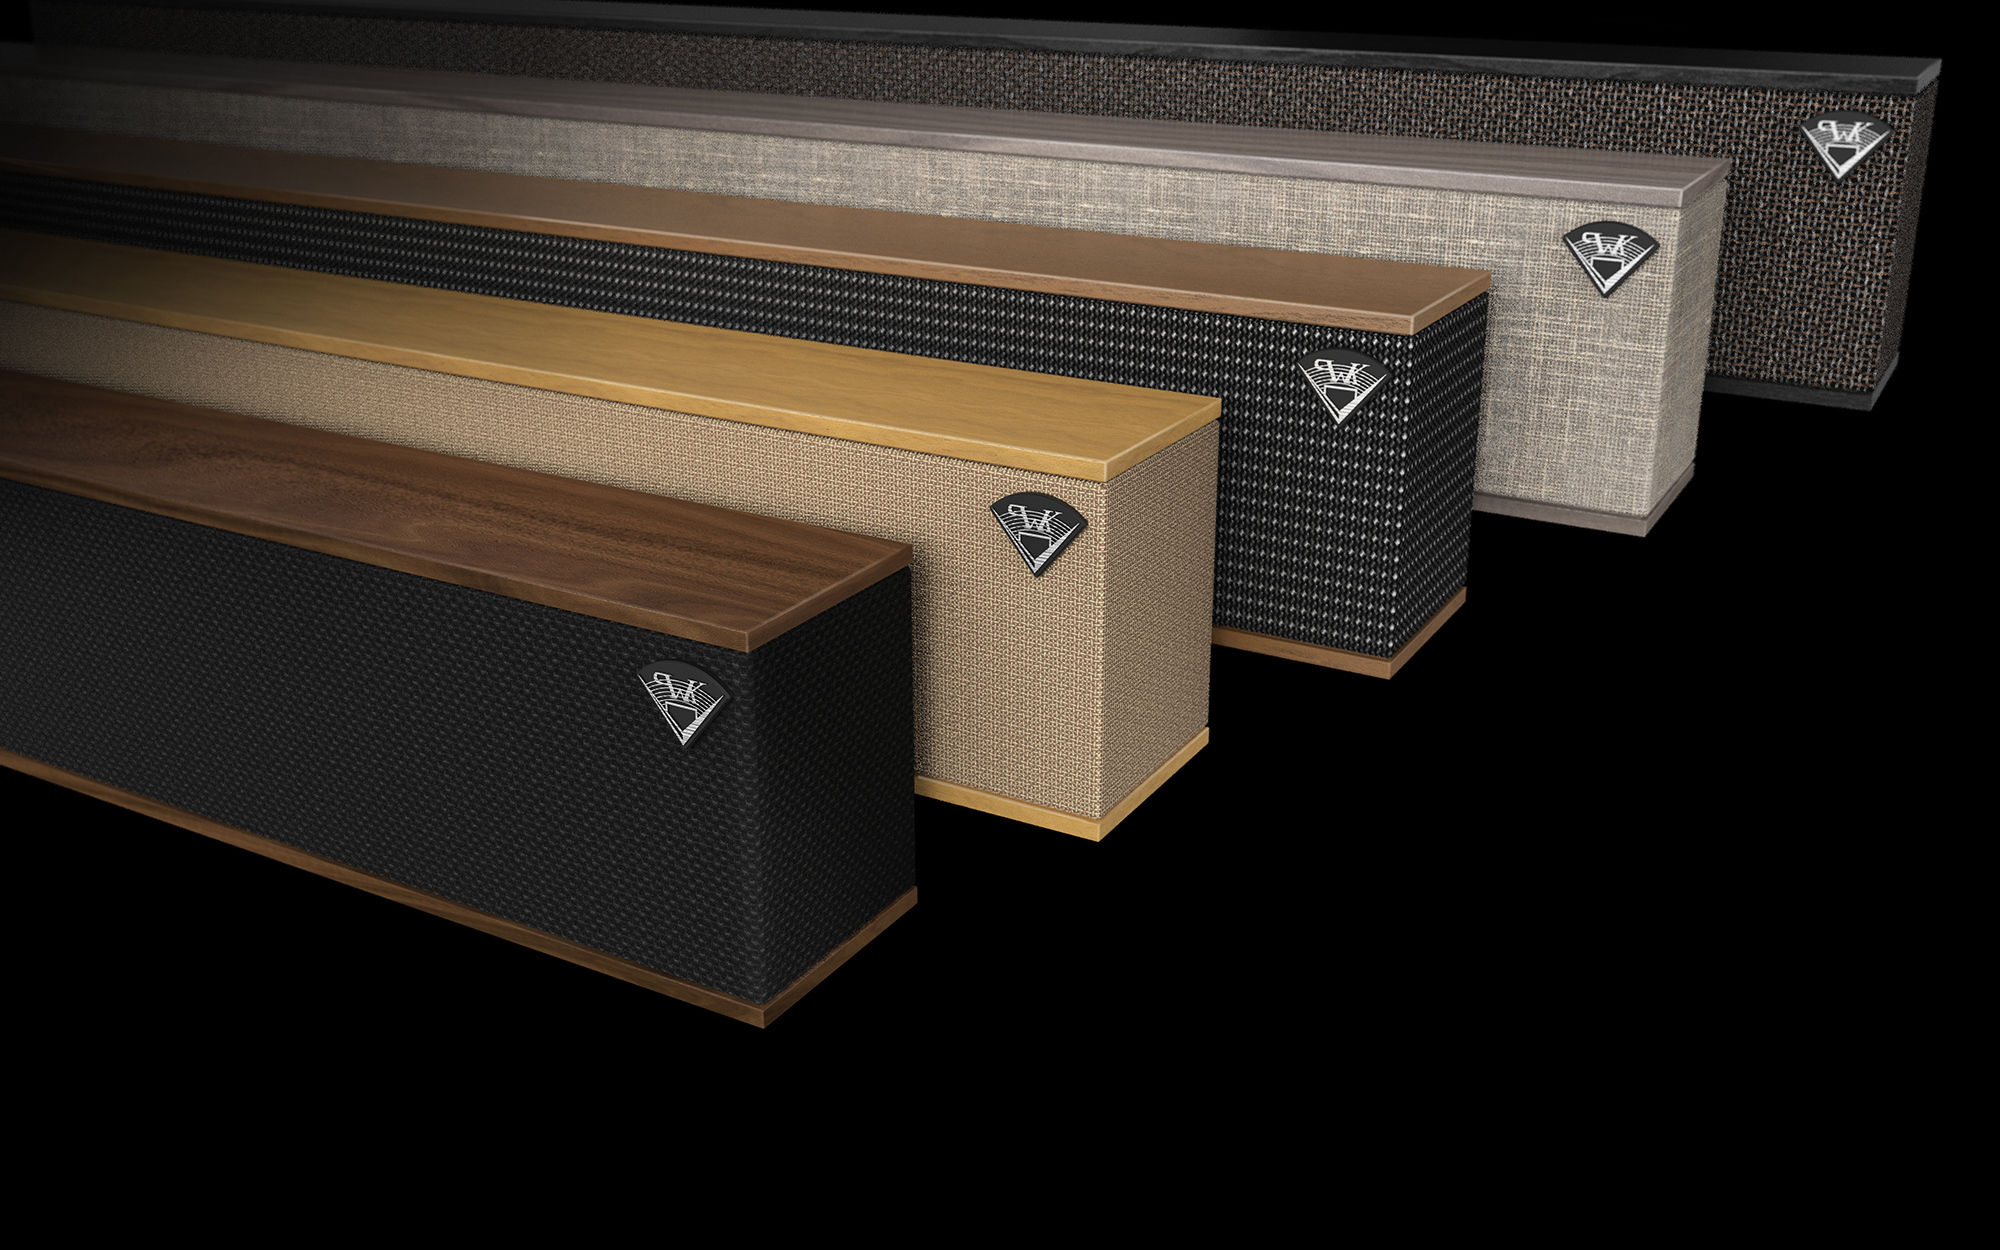 Heritage sound bar family